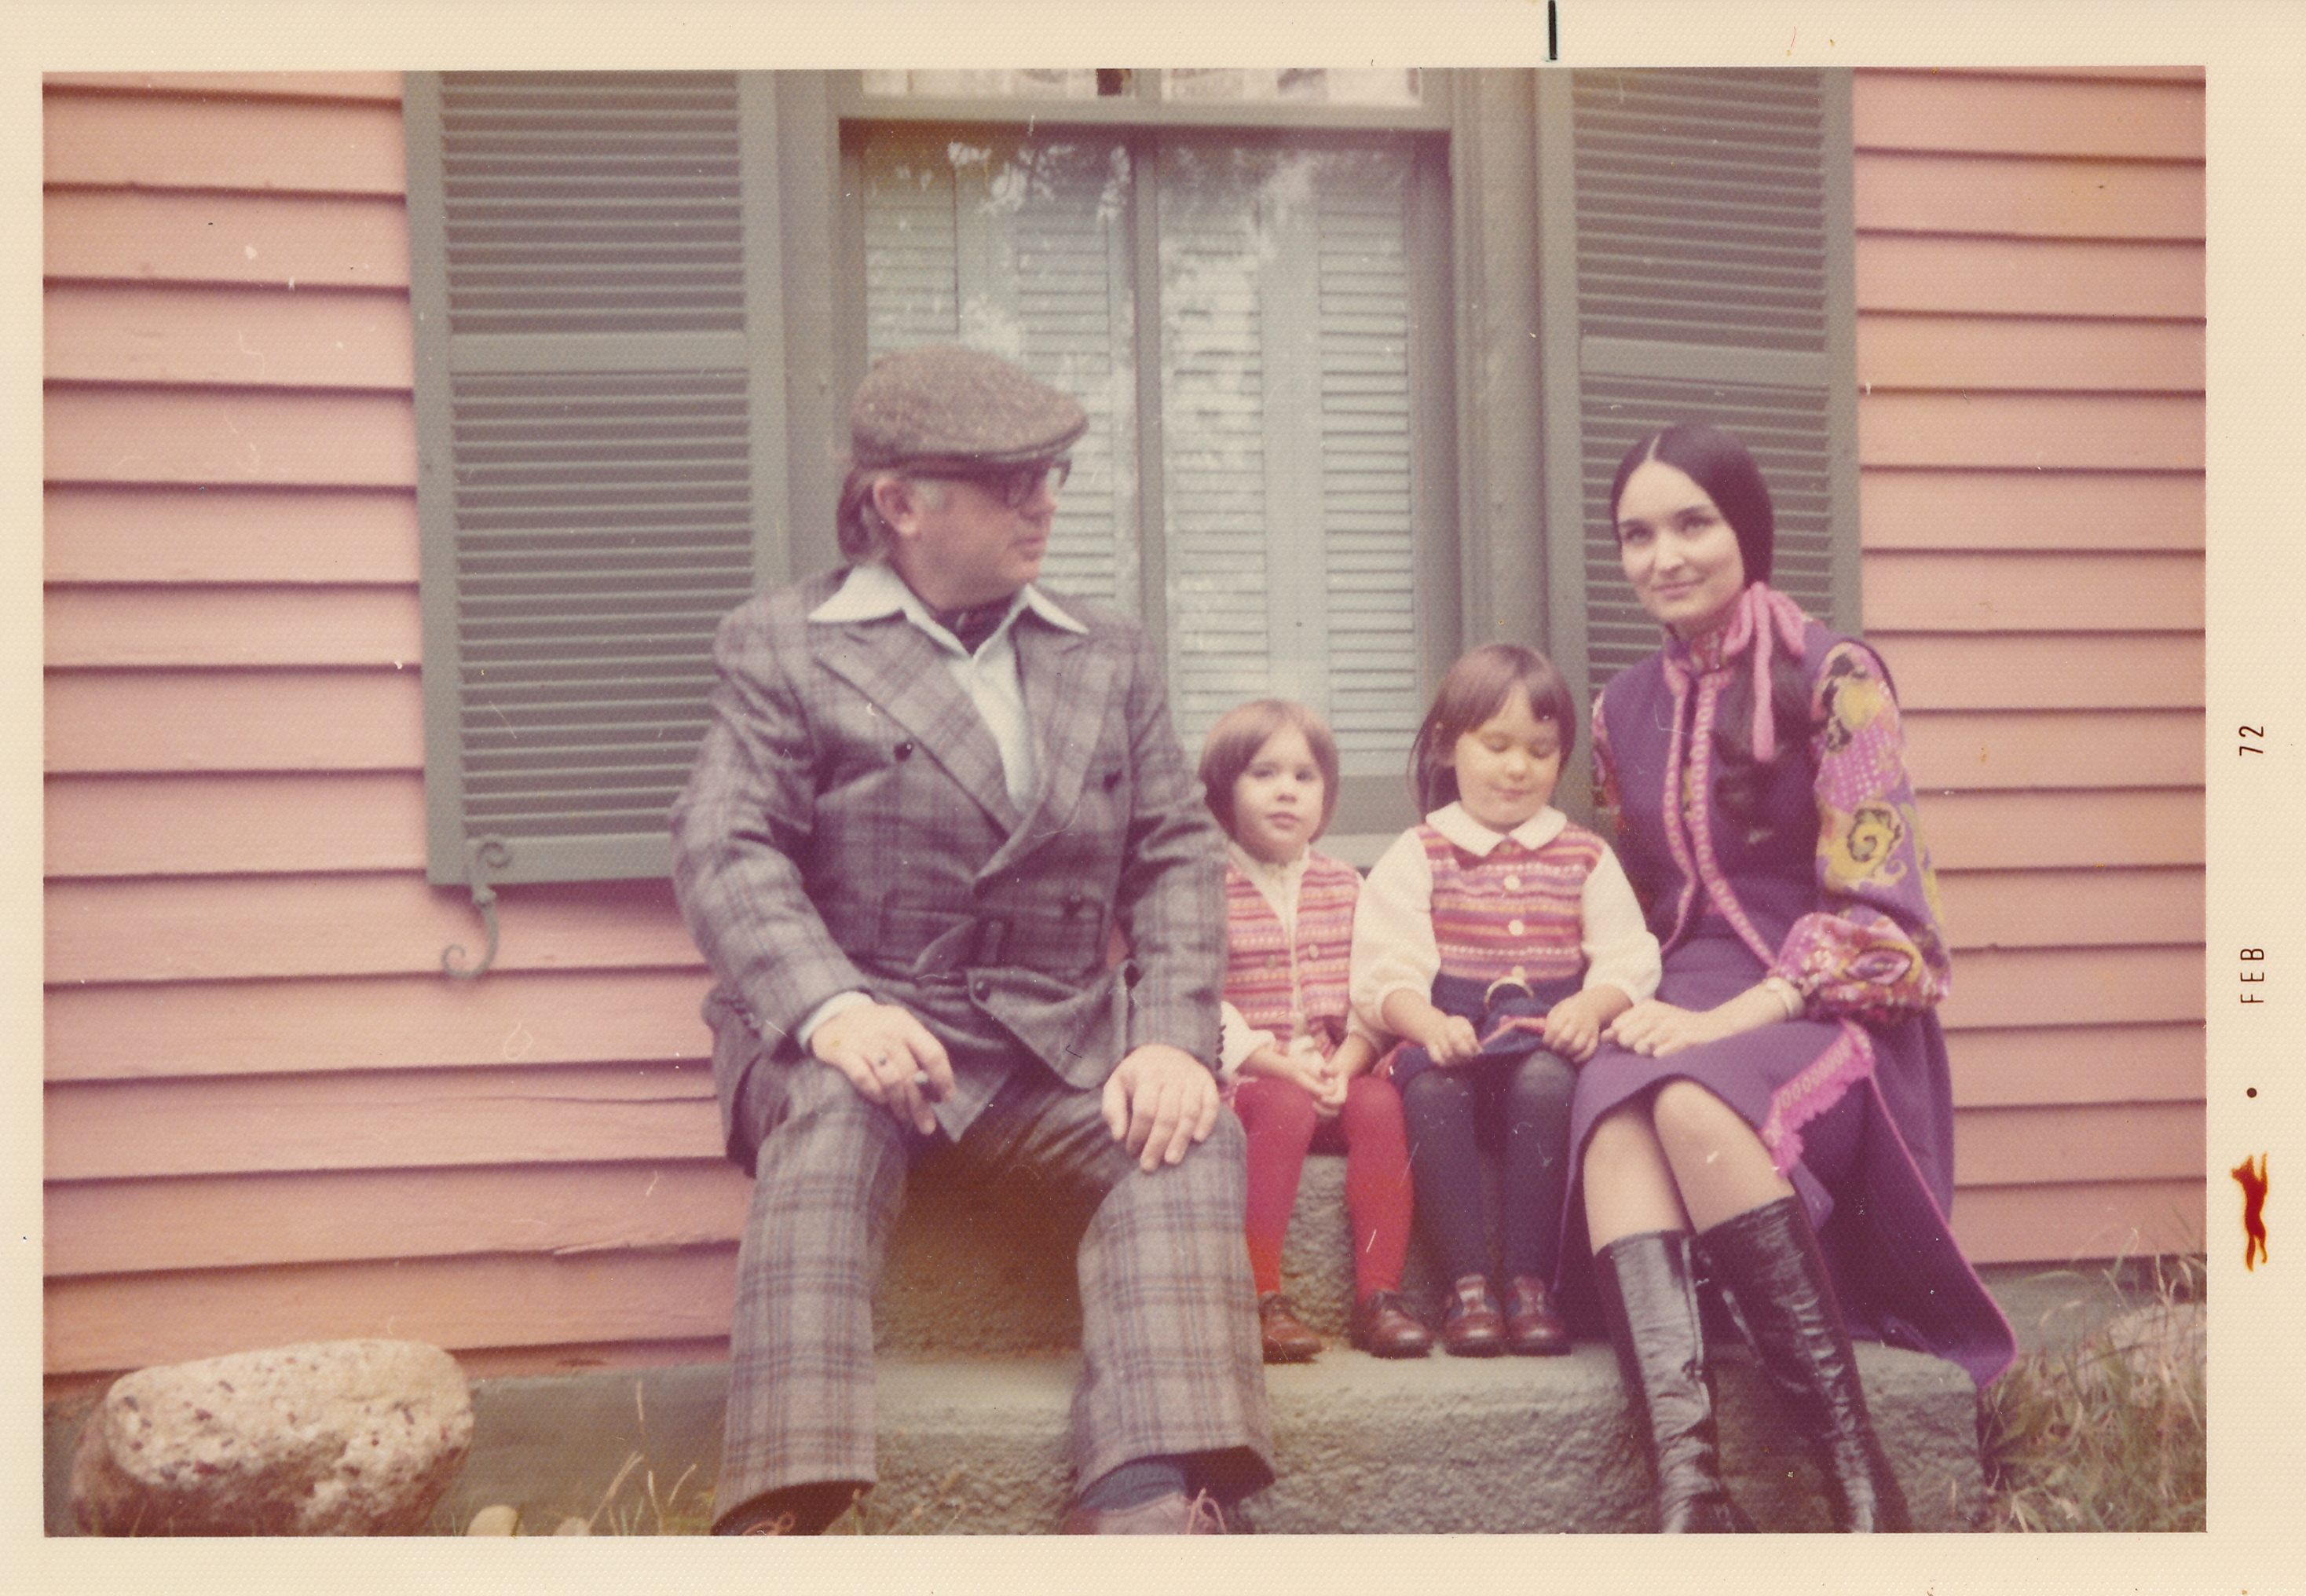 The Kirks with daughters Cecilia (l) and Monica (r ) in the early 1970s.